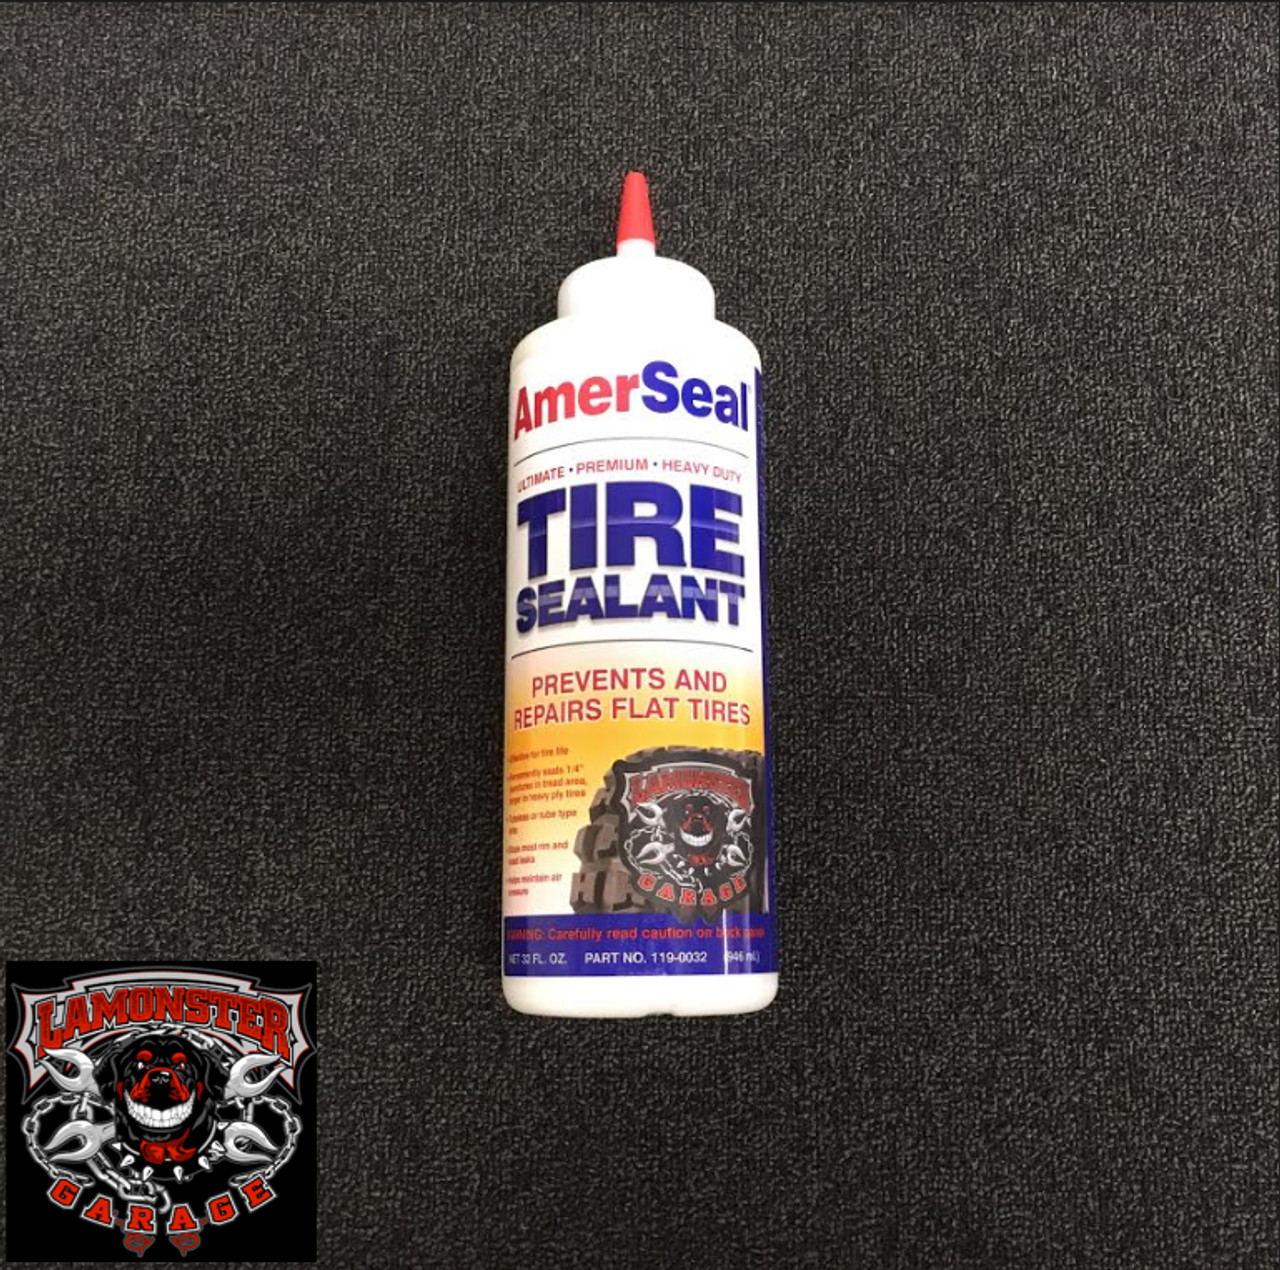 Lamonster Approved Tire Sealant